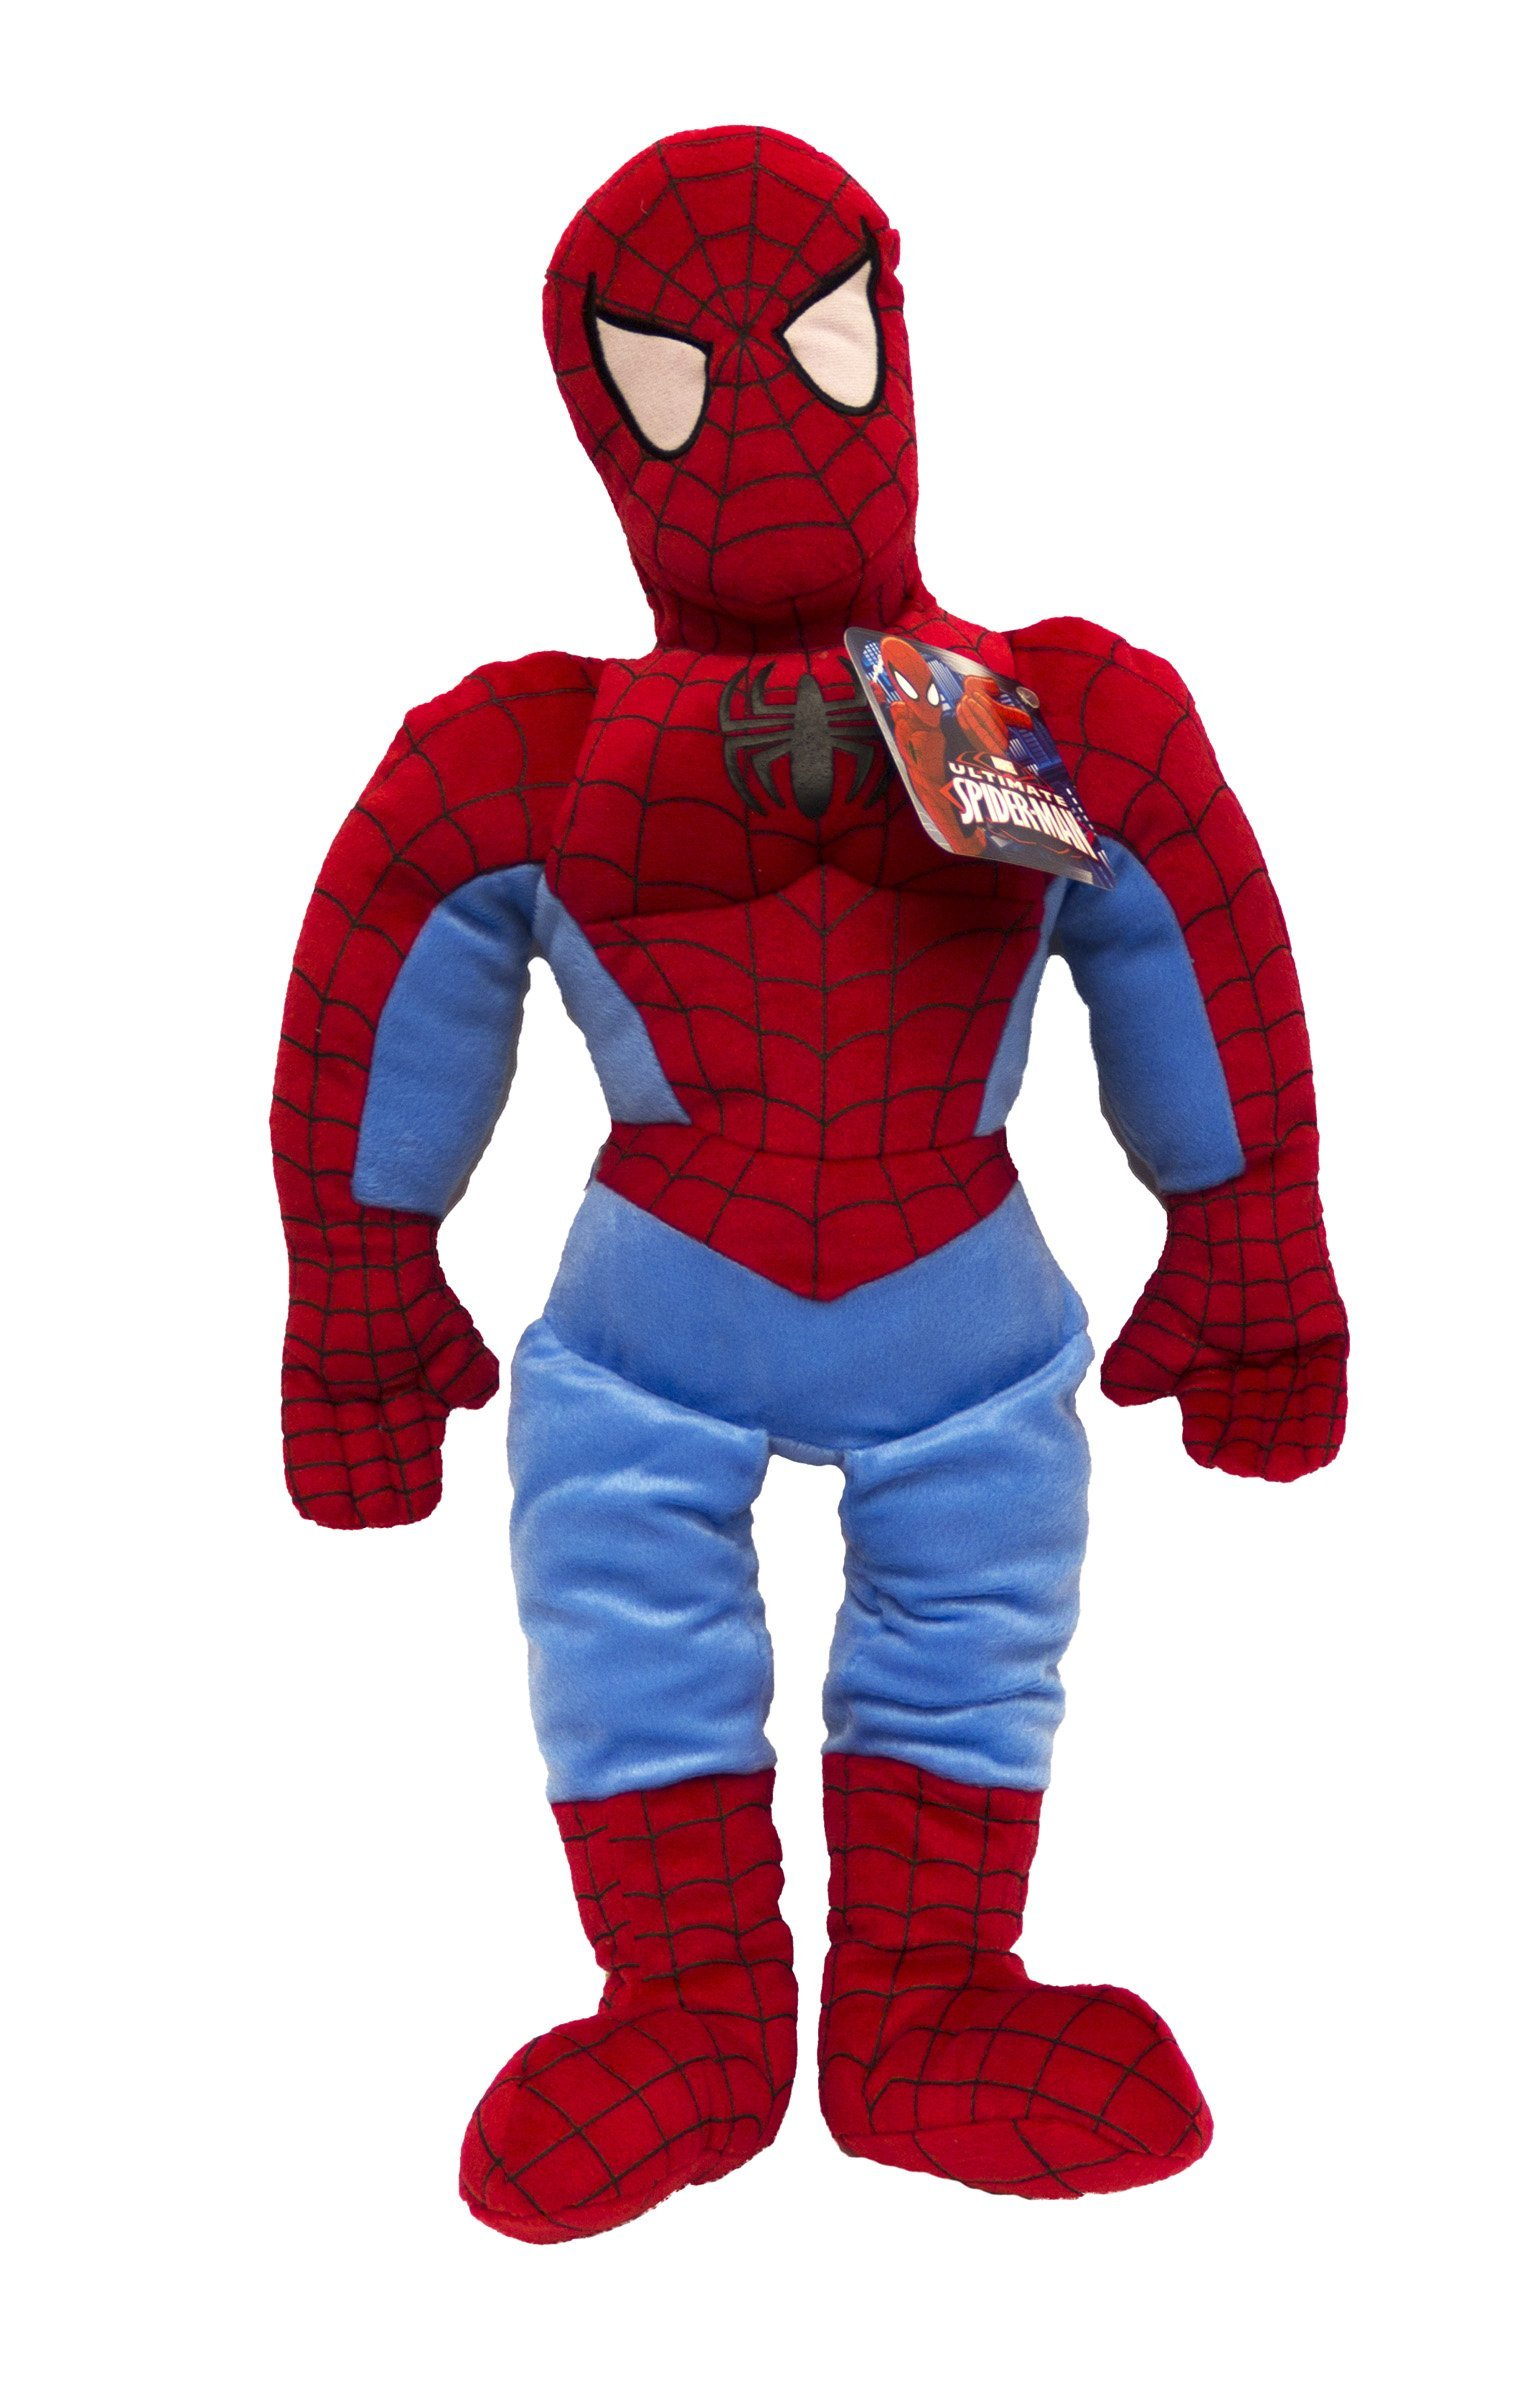 Marvel Spiderman Plush Stuffed Pillow Buddy - Kids Super Soft Polyester Microfiber, 26 inch (Official Product)